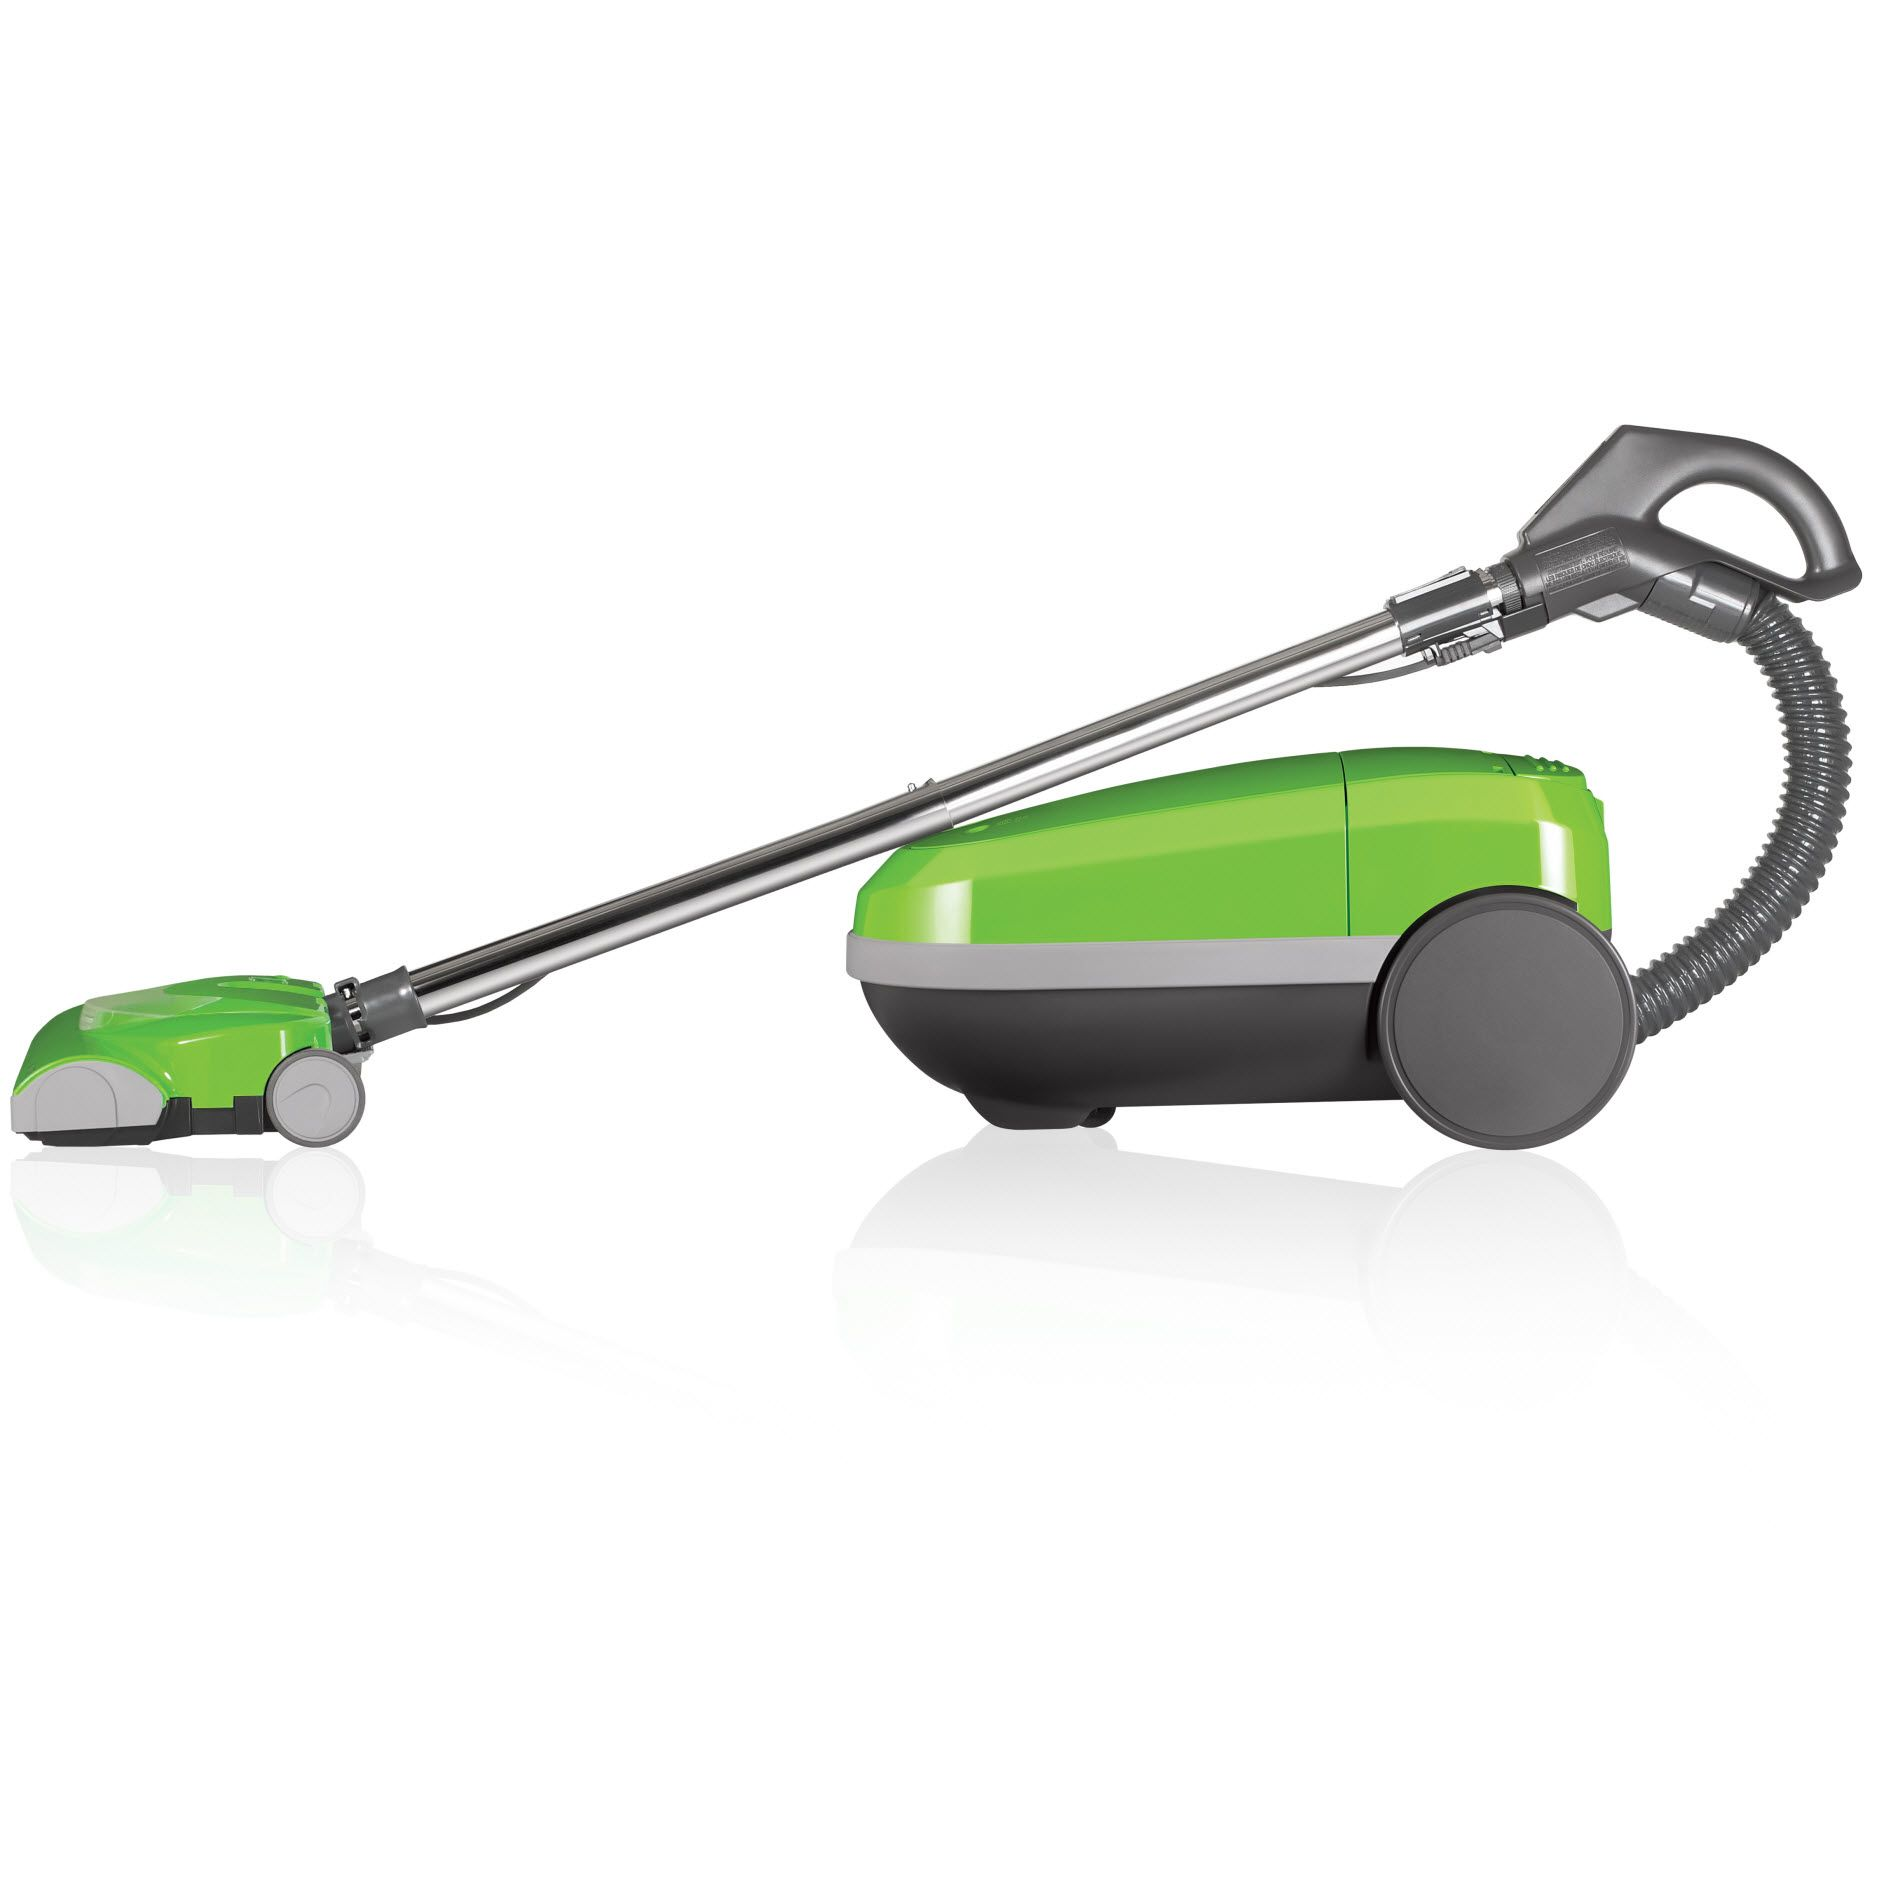 Kenmore 29229 Canister Vacuum Cleaner - Lime